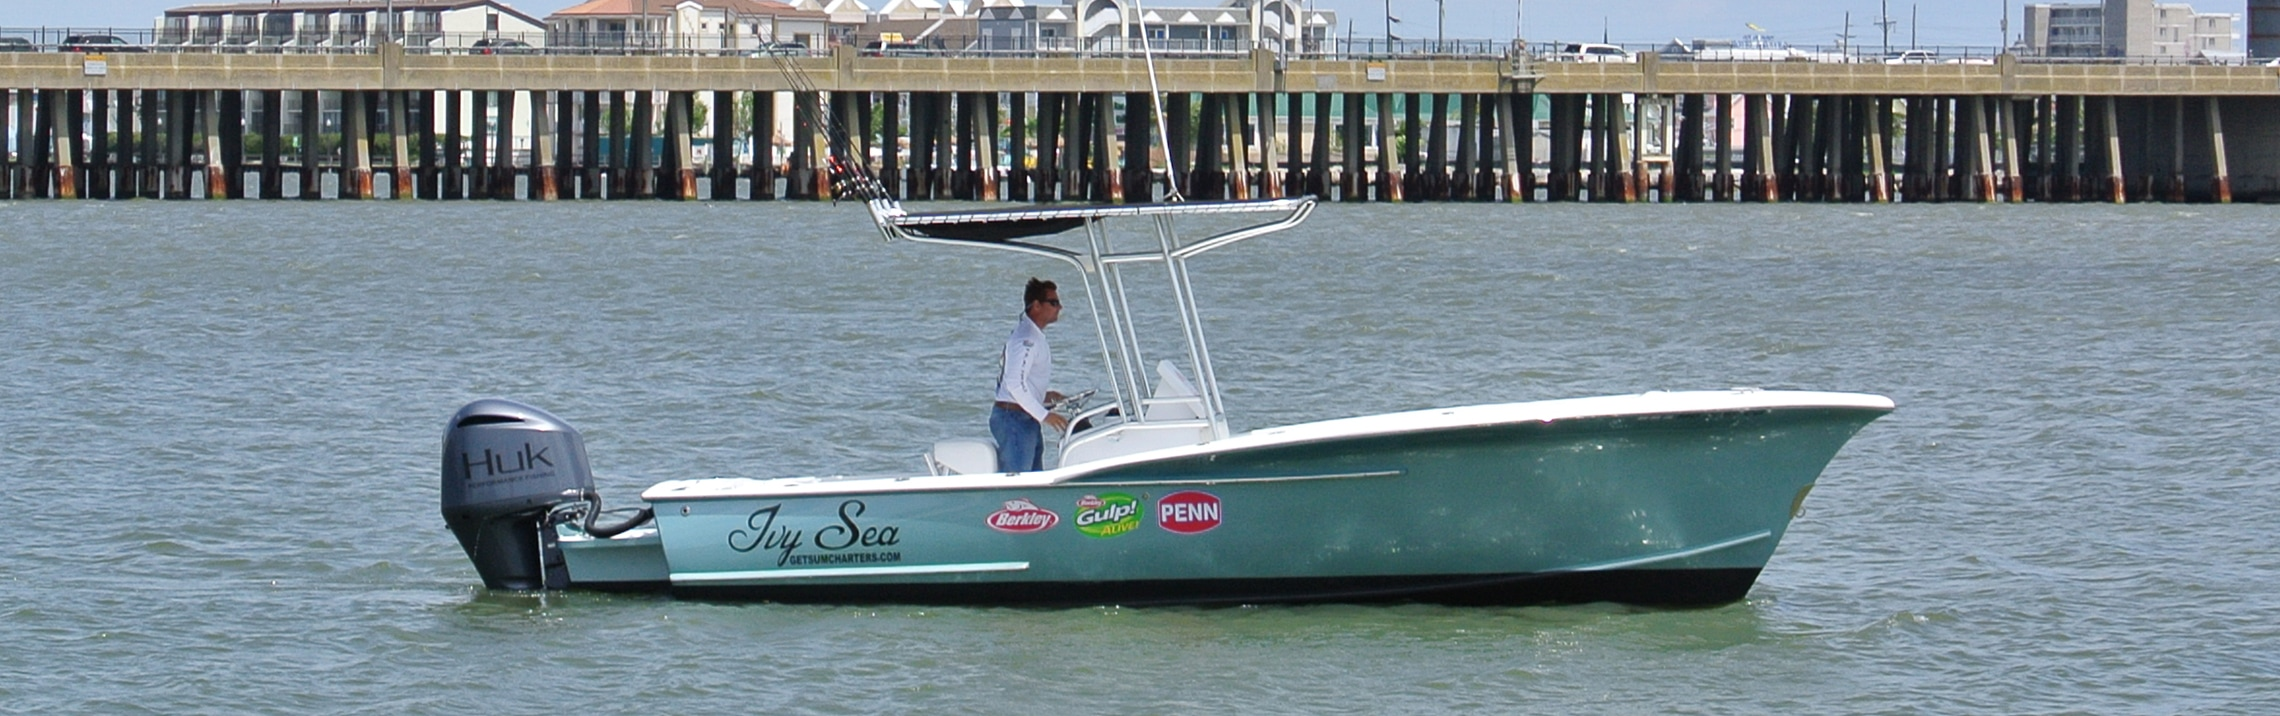 Ocean city charter boat get sum get sum charters for Fishing in ocean city md